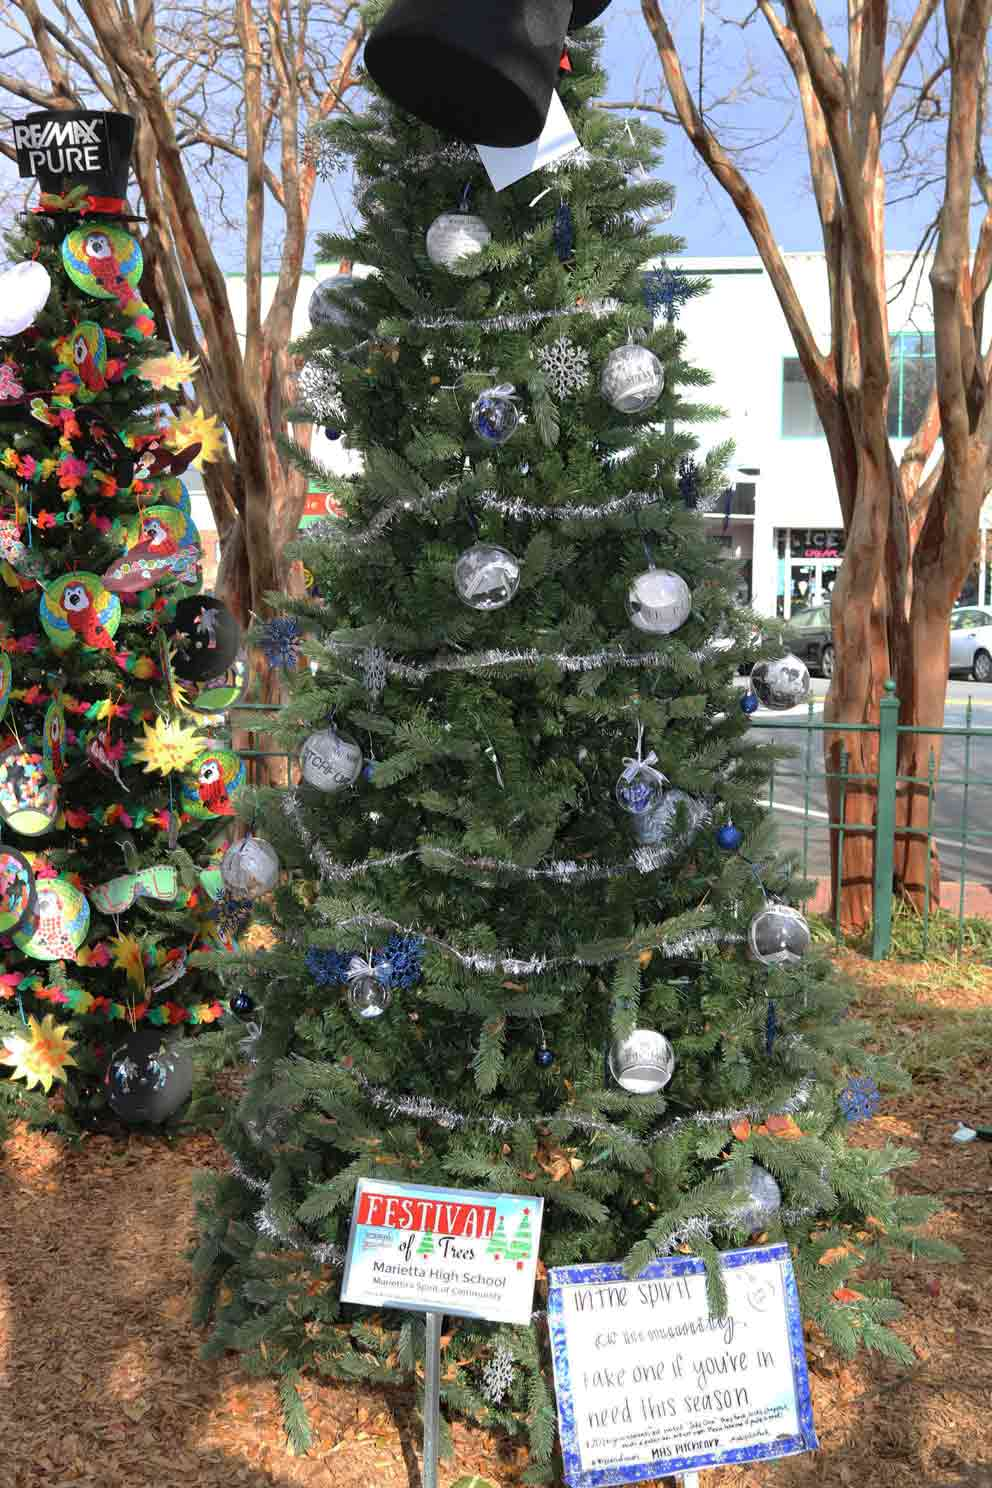 Marietta High School    Created by:  The Pitchfork Newspaper Staff   Theme:  Marietta's Spirit of Community   Inspiration:  To celebrate Pitchfork's 90th anniversary, our tree highlights Marietta's spirit of community through sharing special moments and people from the past and present. We hope our tree will inspire the magical spirit of the season by remembering the connectedness of our community.